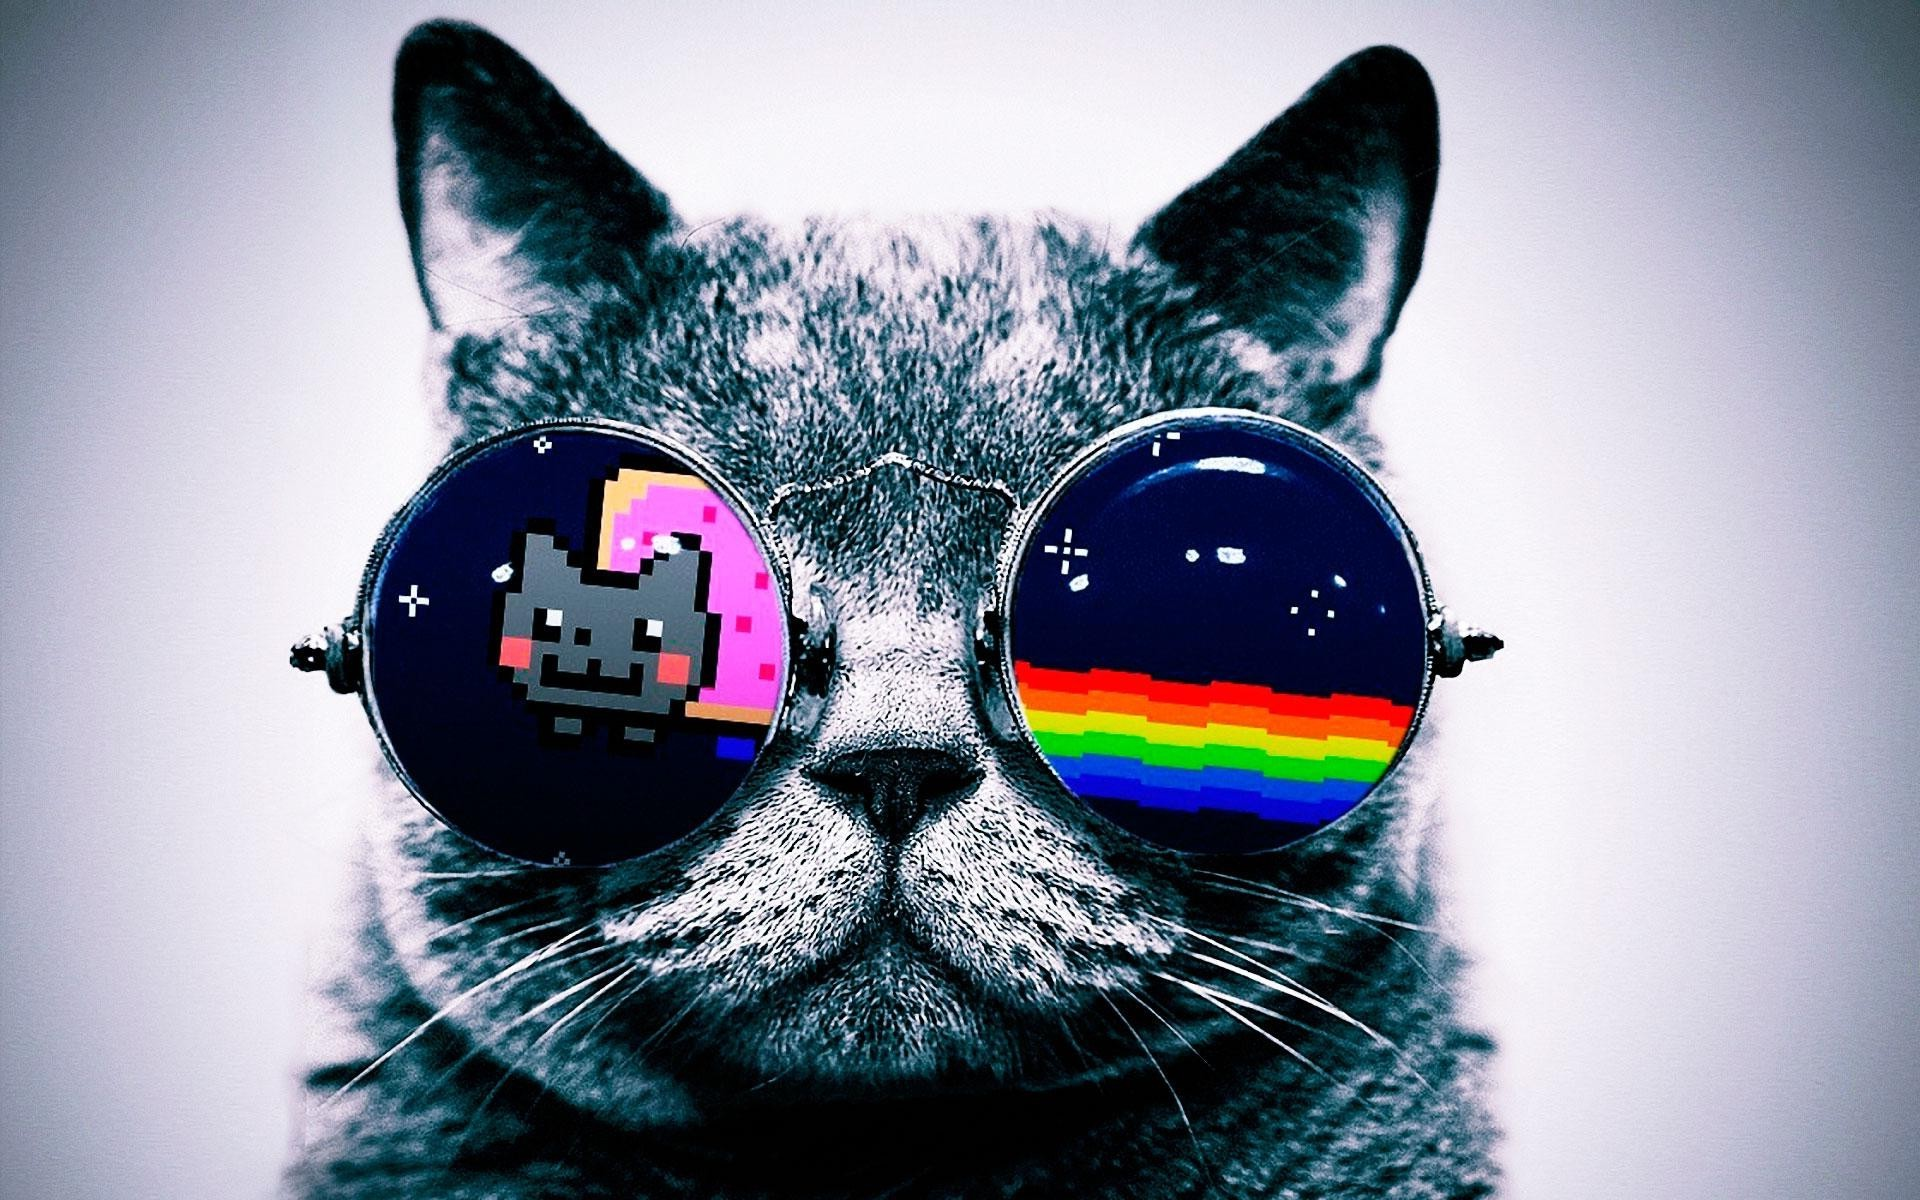 Iphone X Wallpaper Gif Landscape Nyan Cat Cat Glasses Wallpapers Hd Desktop And Mobile